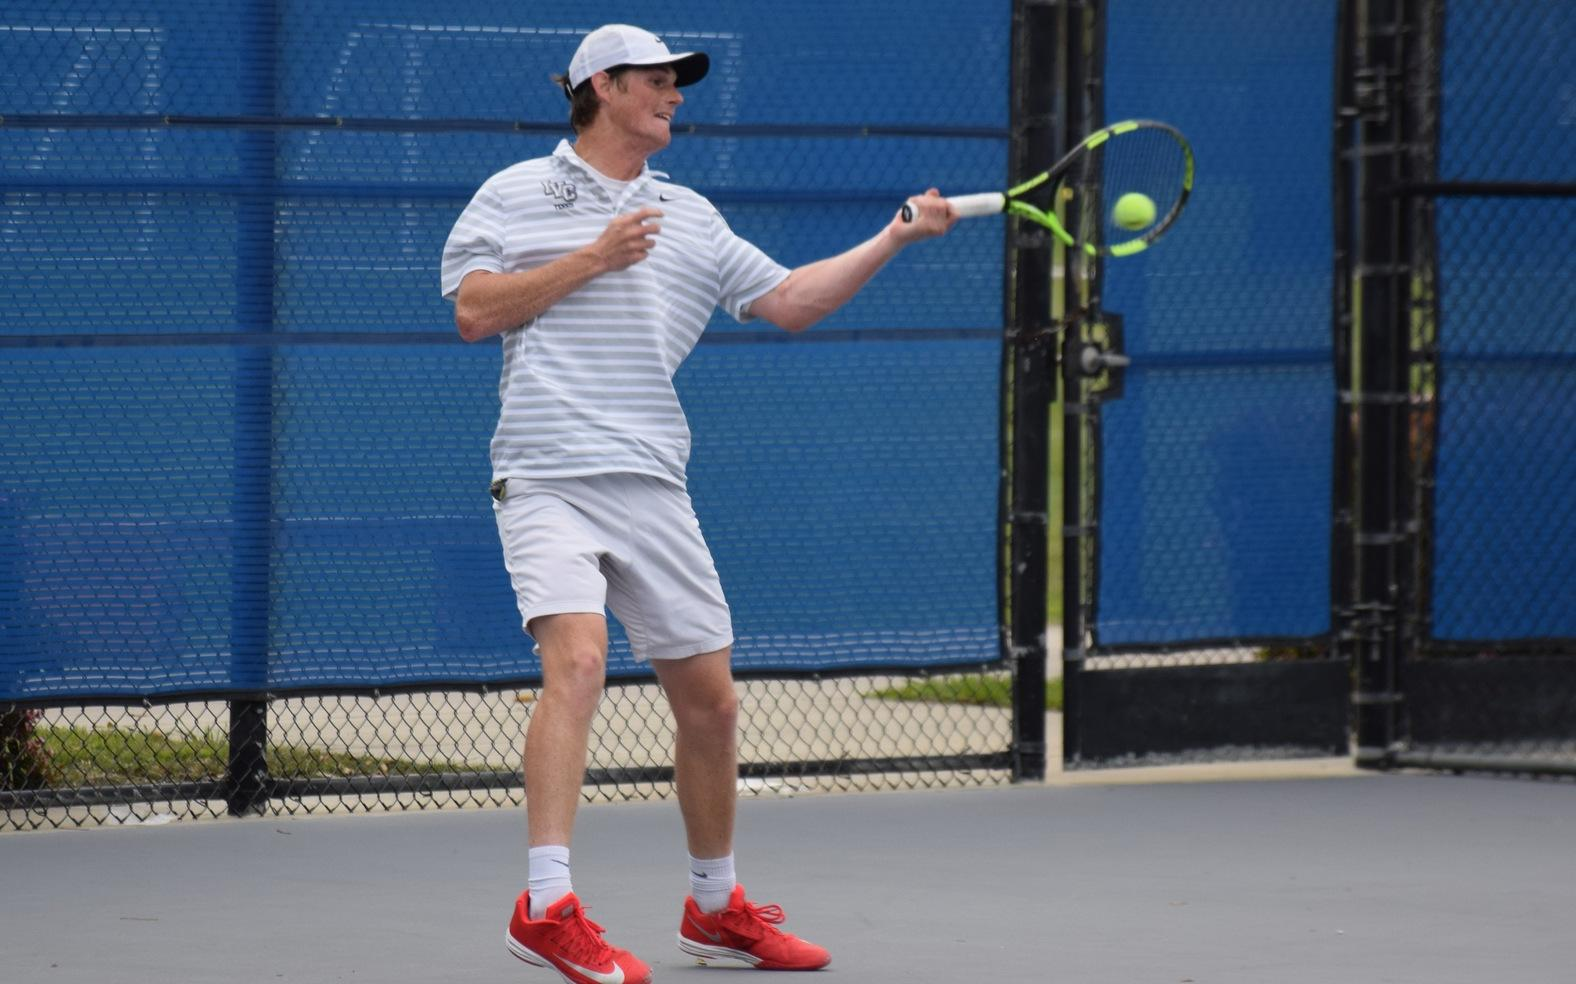 Men's tennis team stays in third place in standings with win at OCC